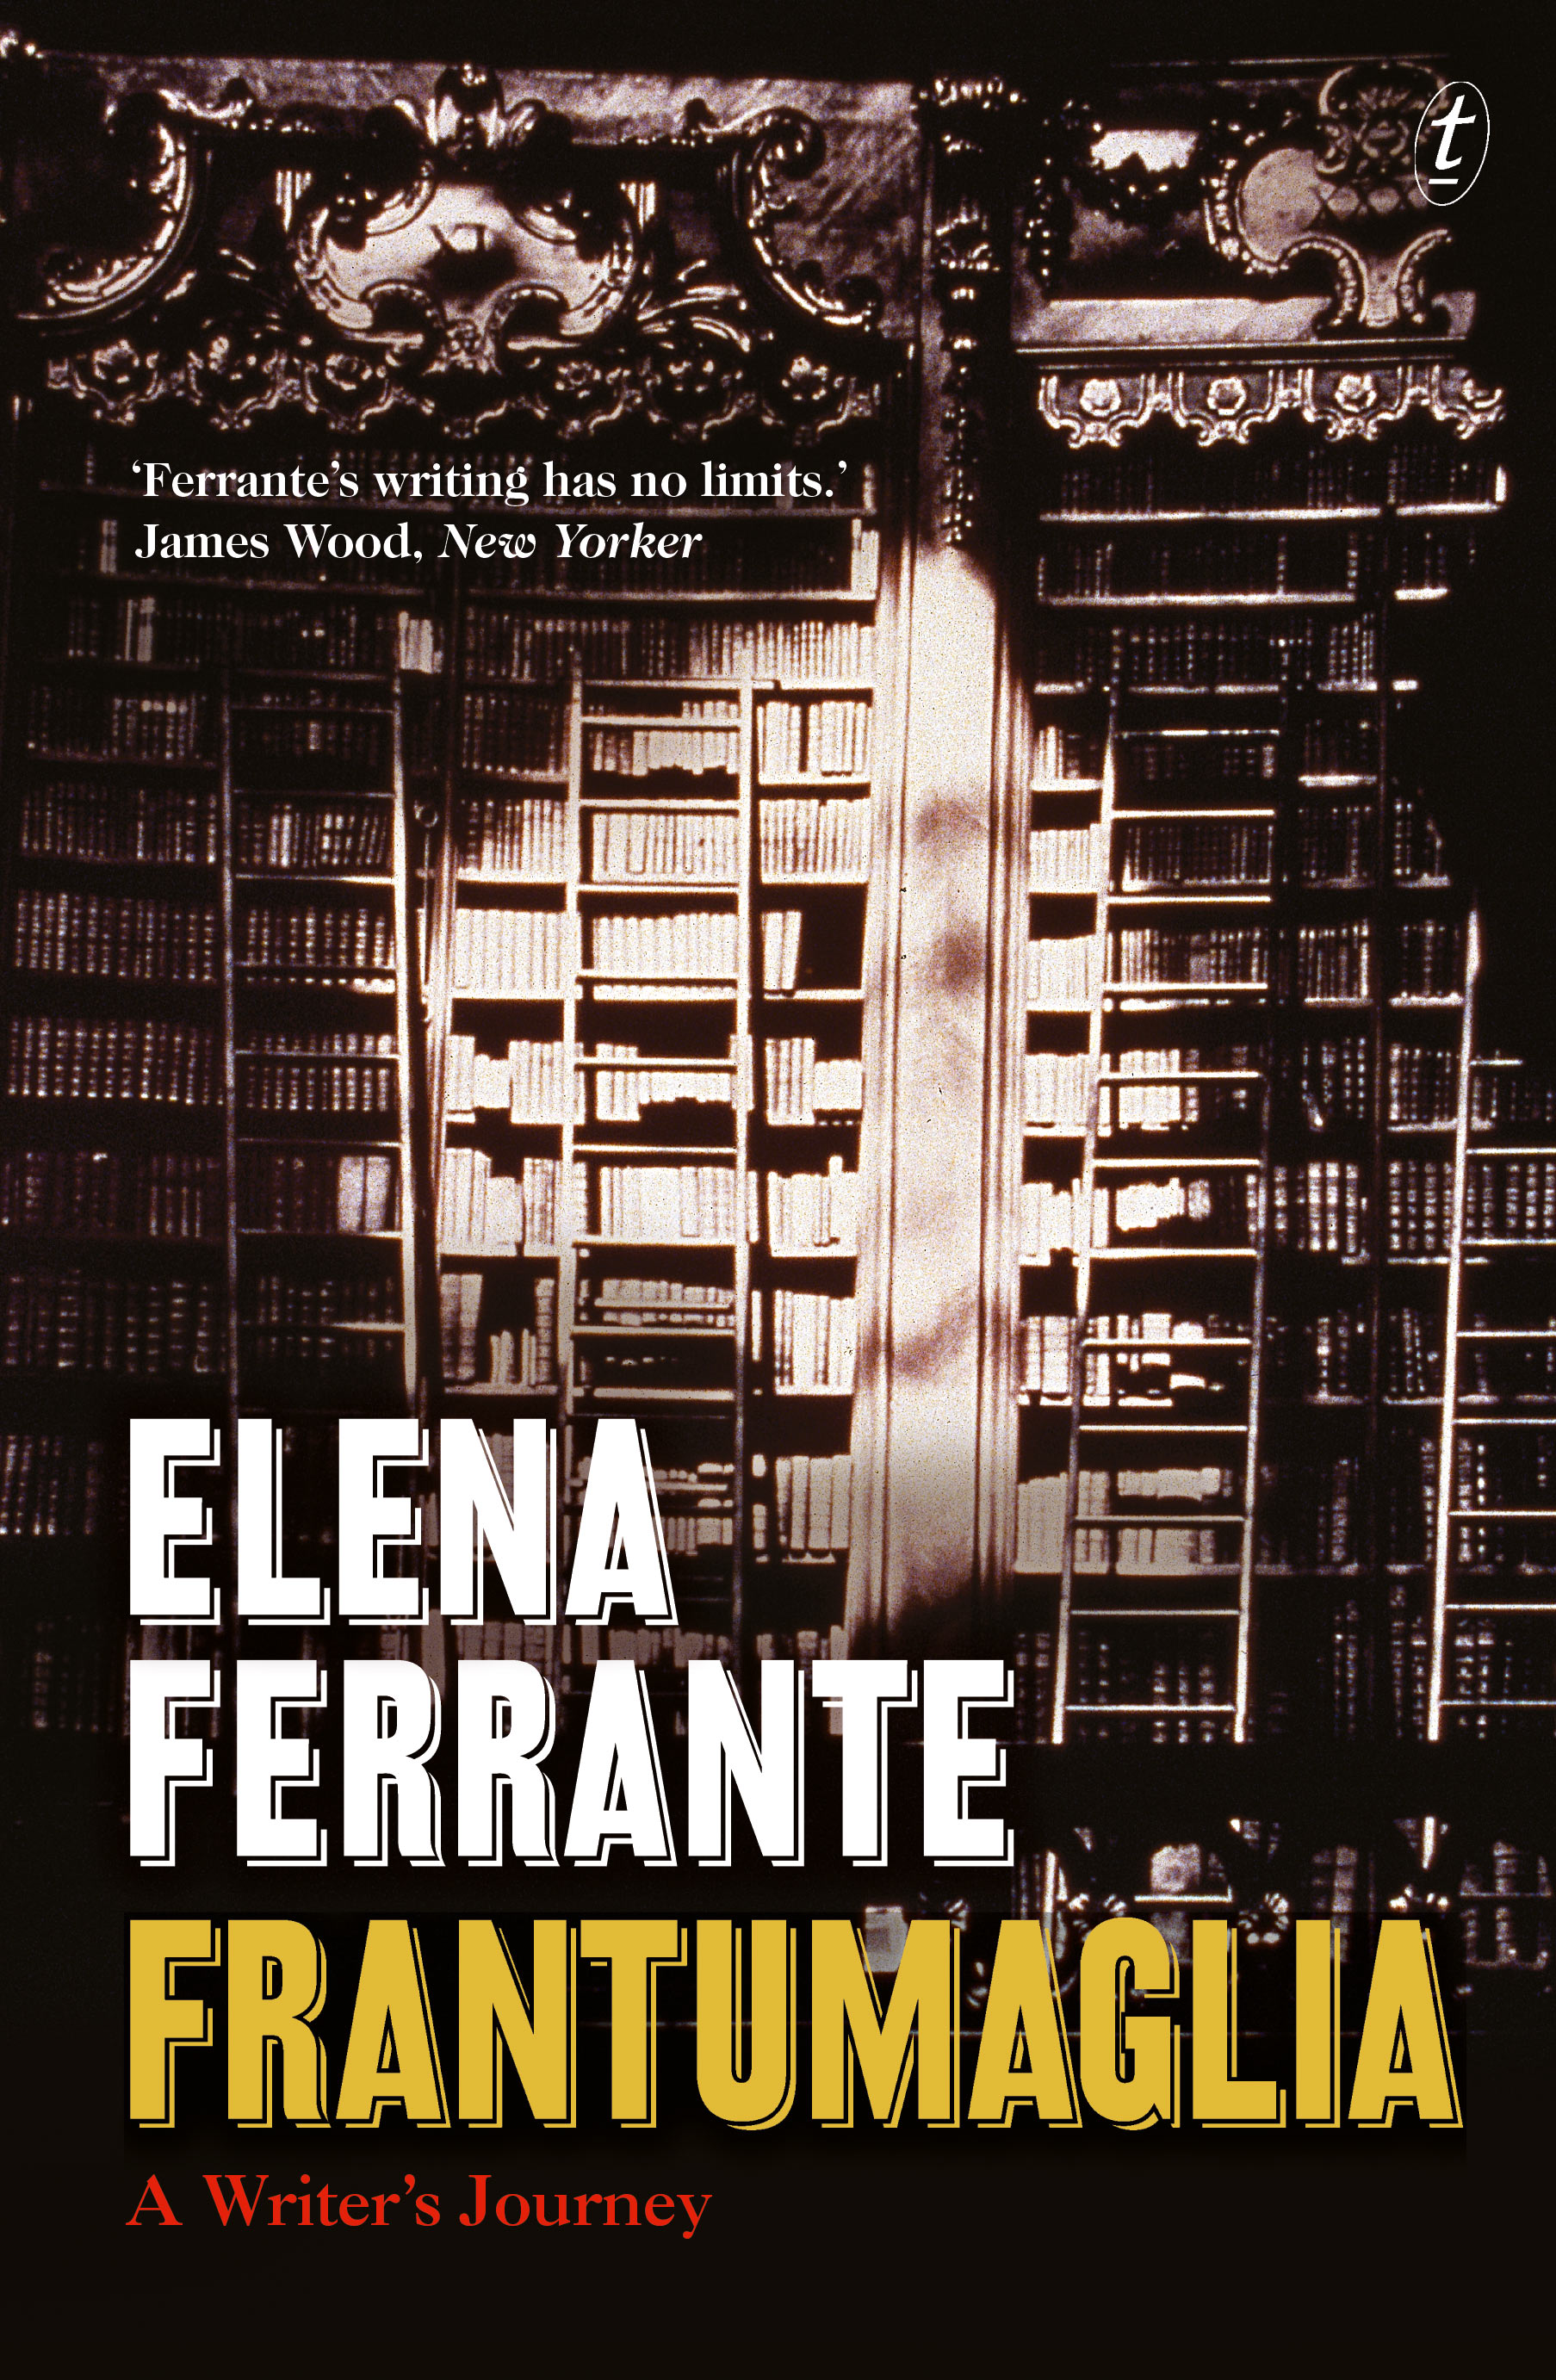 Buy Ebook Other Titles Byelena Ferrante Frantumaglia